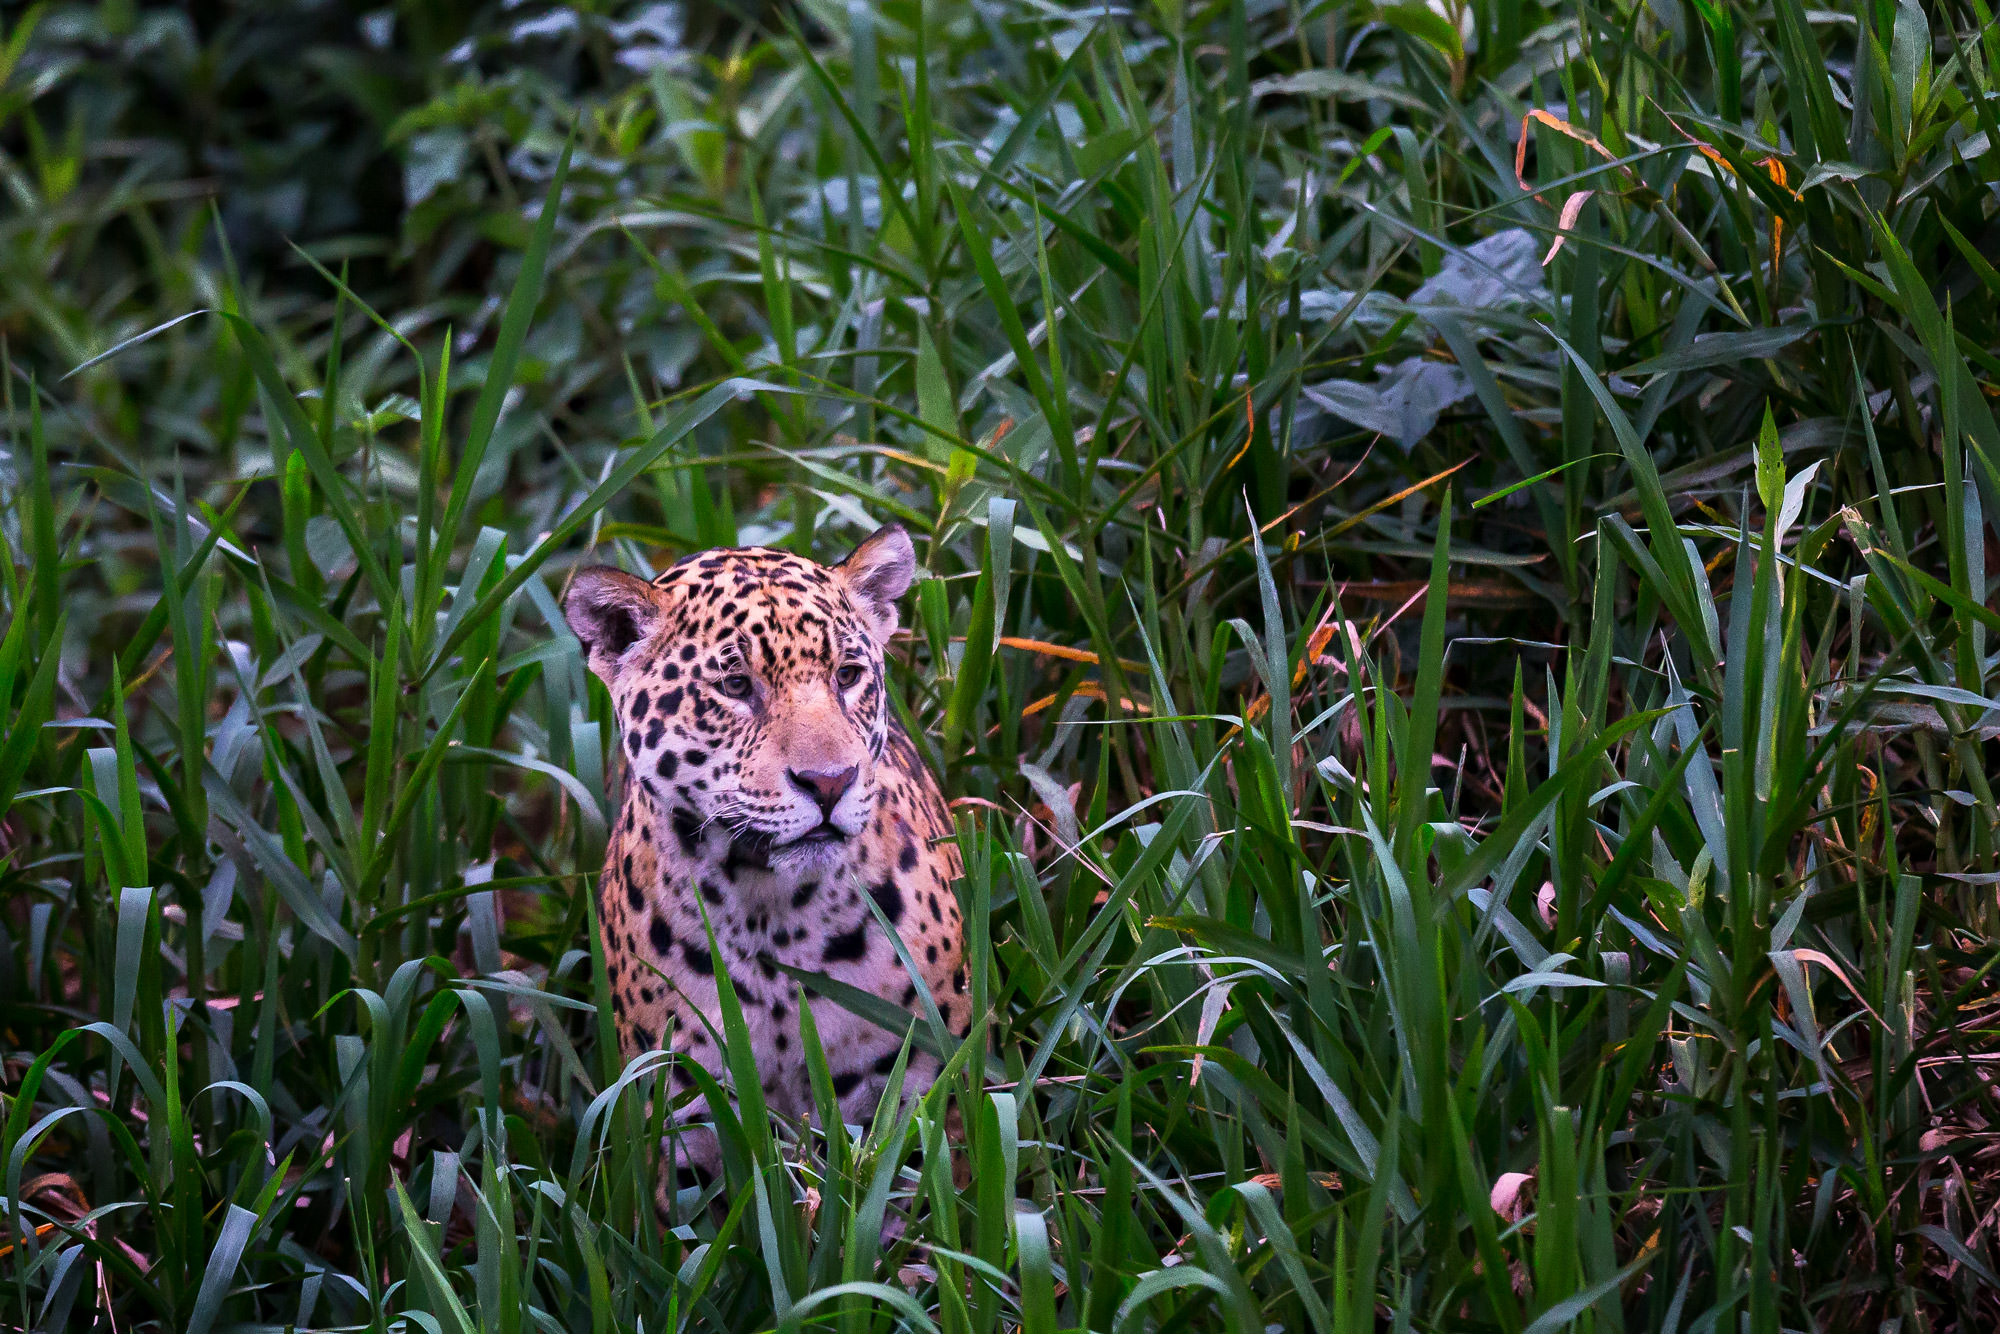 Jaguar Fine Art Photography A Limited Edition photograph of a Jaguar in the tall grass, a Cat In The Grass, at The Pantanal in...